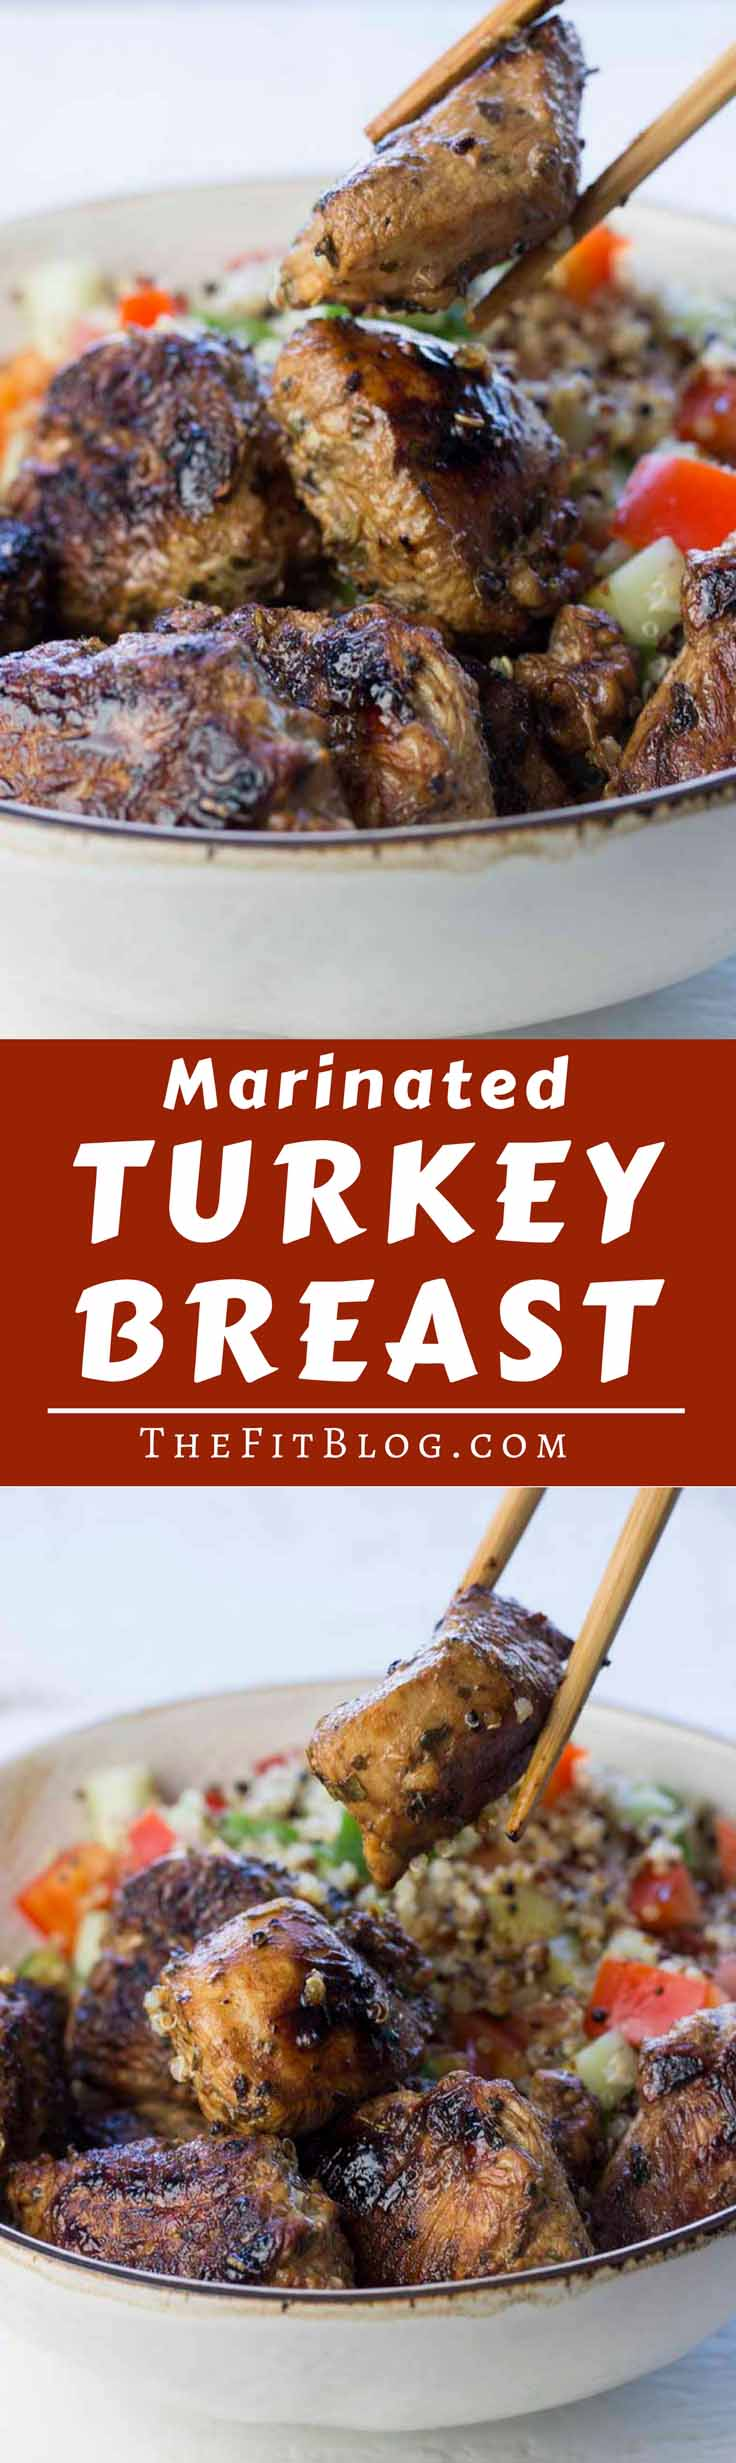 This Marinated Turkey Breast has to be one of my favorite recipes for a quick, healthy meal. It combines maximum flavor with minimum work in the kitchen. #healthyeating #healthyrecipes #diabetesdiet #diabetesrecipes #diabeticdiet #diabeticfood #diabeticrecipe #diabeticfriendly #lowcarb #lowcarbdiet #lowcarbrecipes